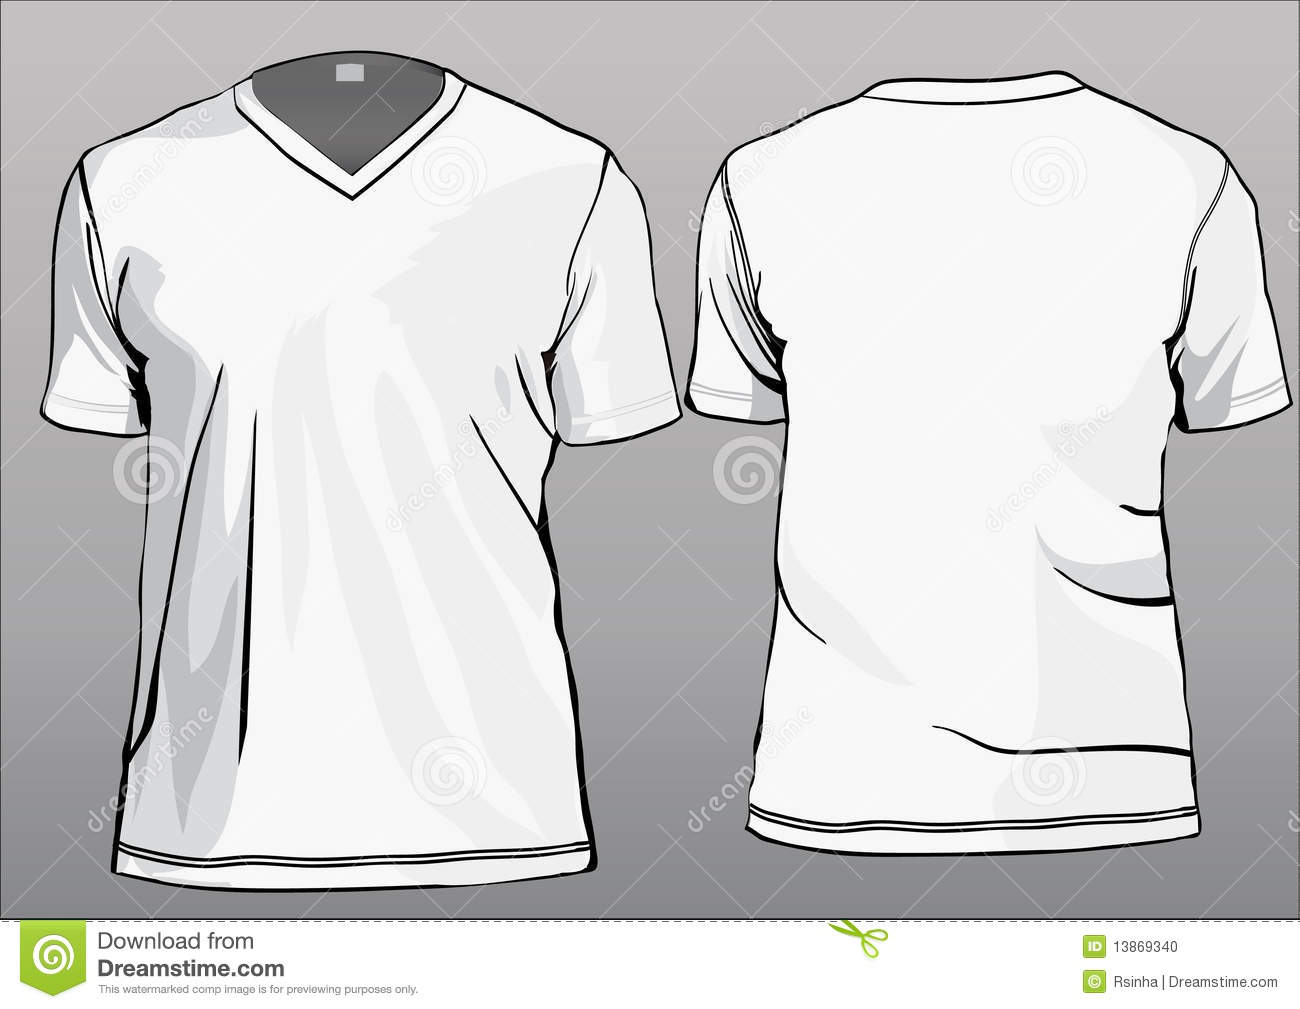 Images of V Neck T Shirt Template - #SpaceHero